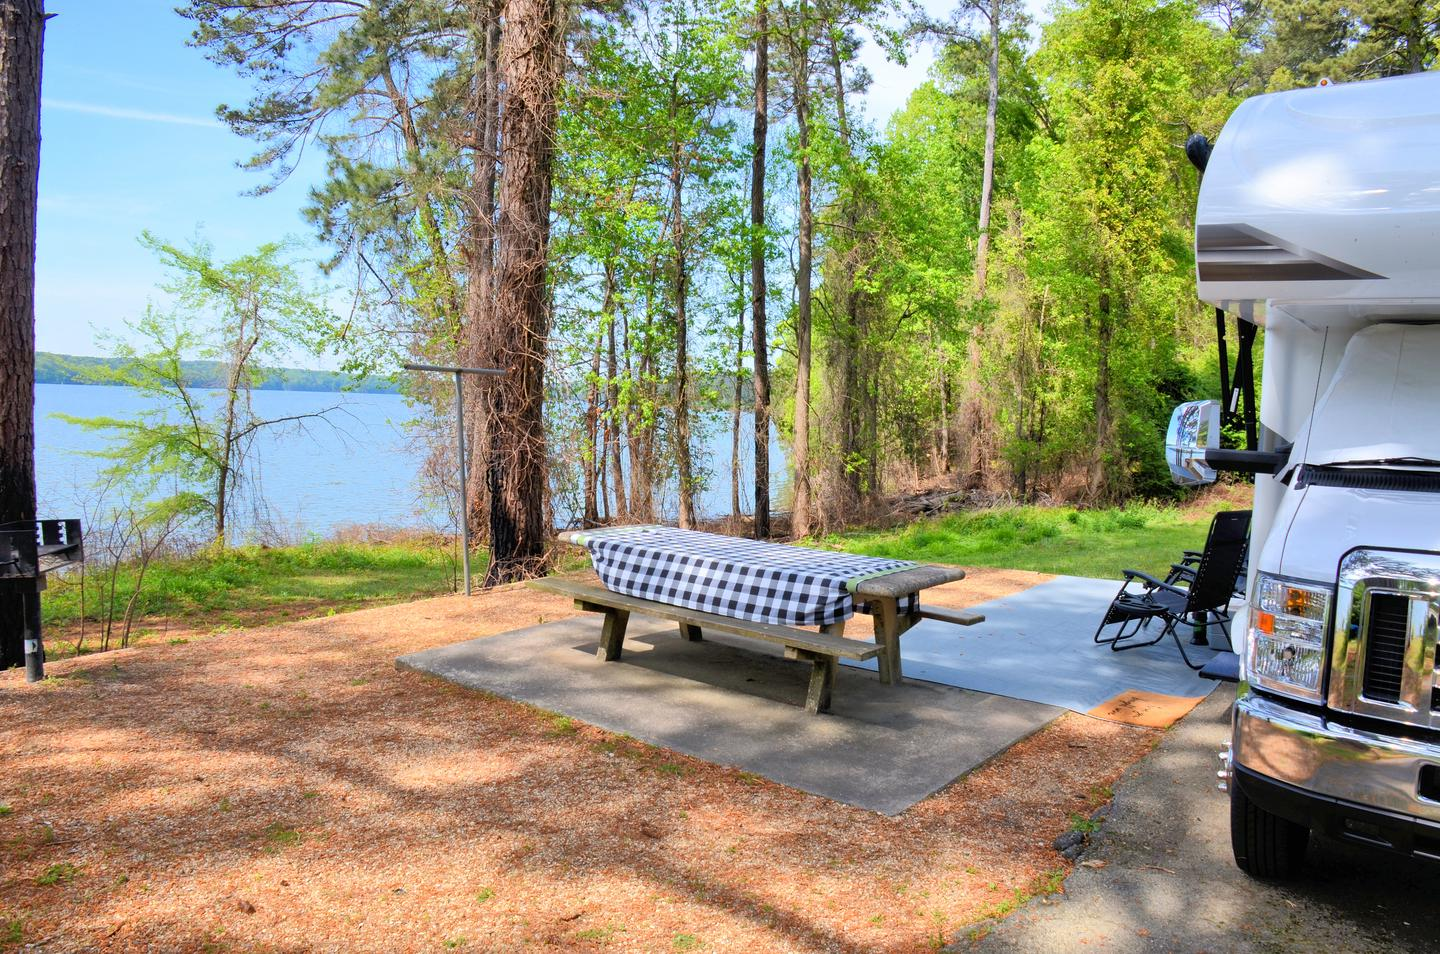 Sweetwater Campground Site 36 (6)Sweetwater Campground Site 36